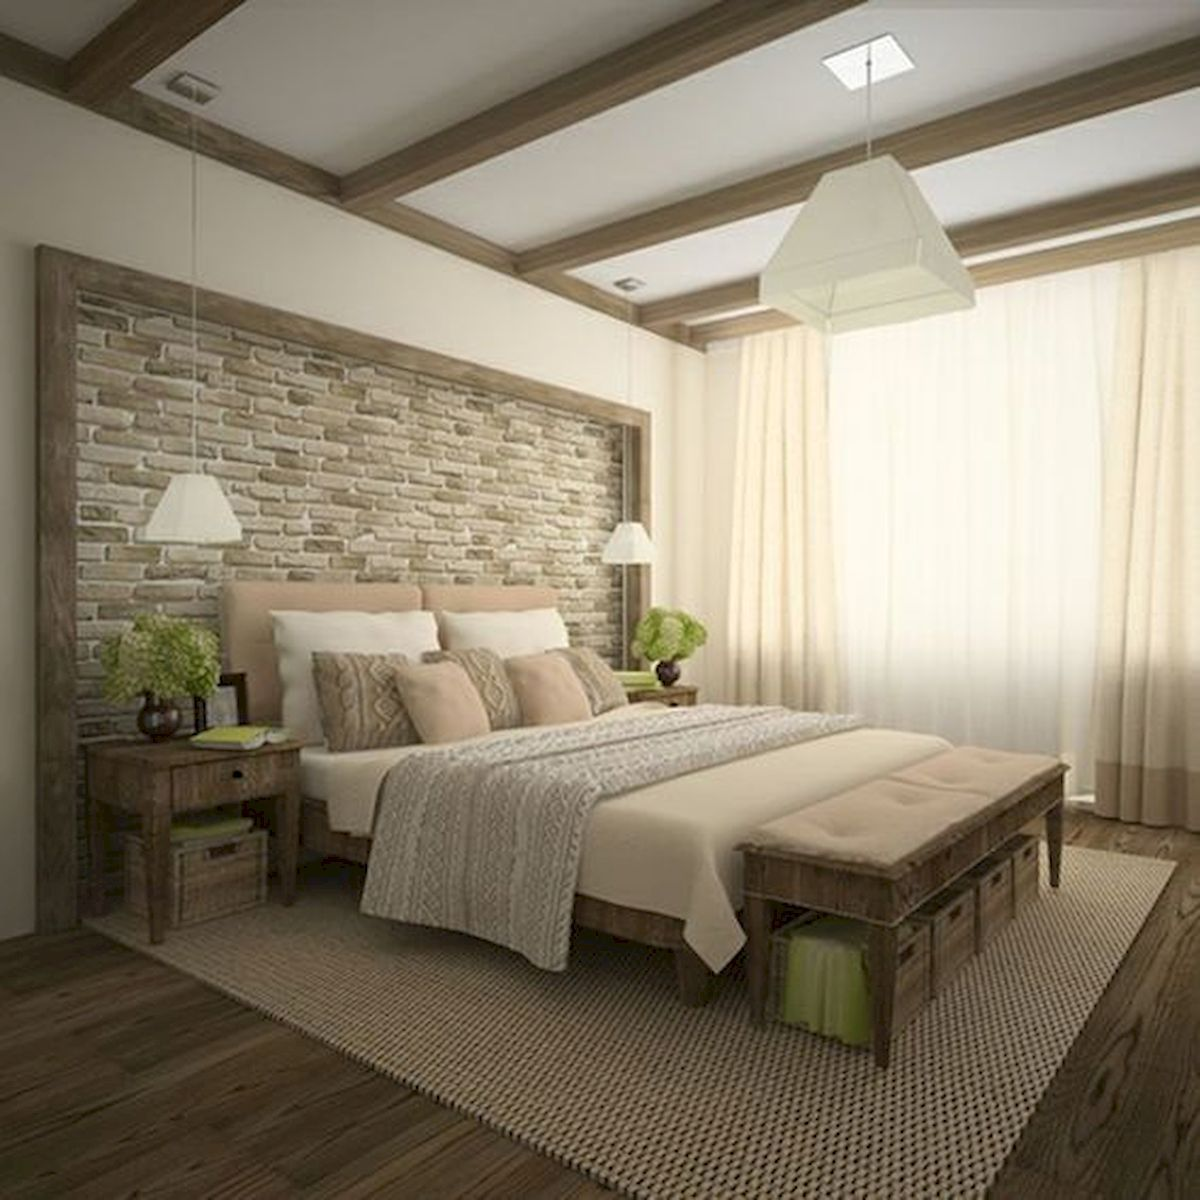 120 Awesome Farmhouse Master Bedroom Decor Ideas